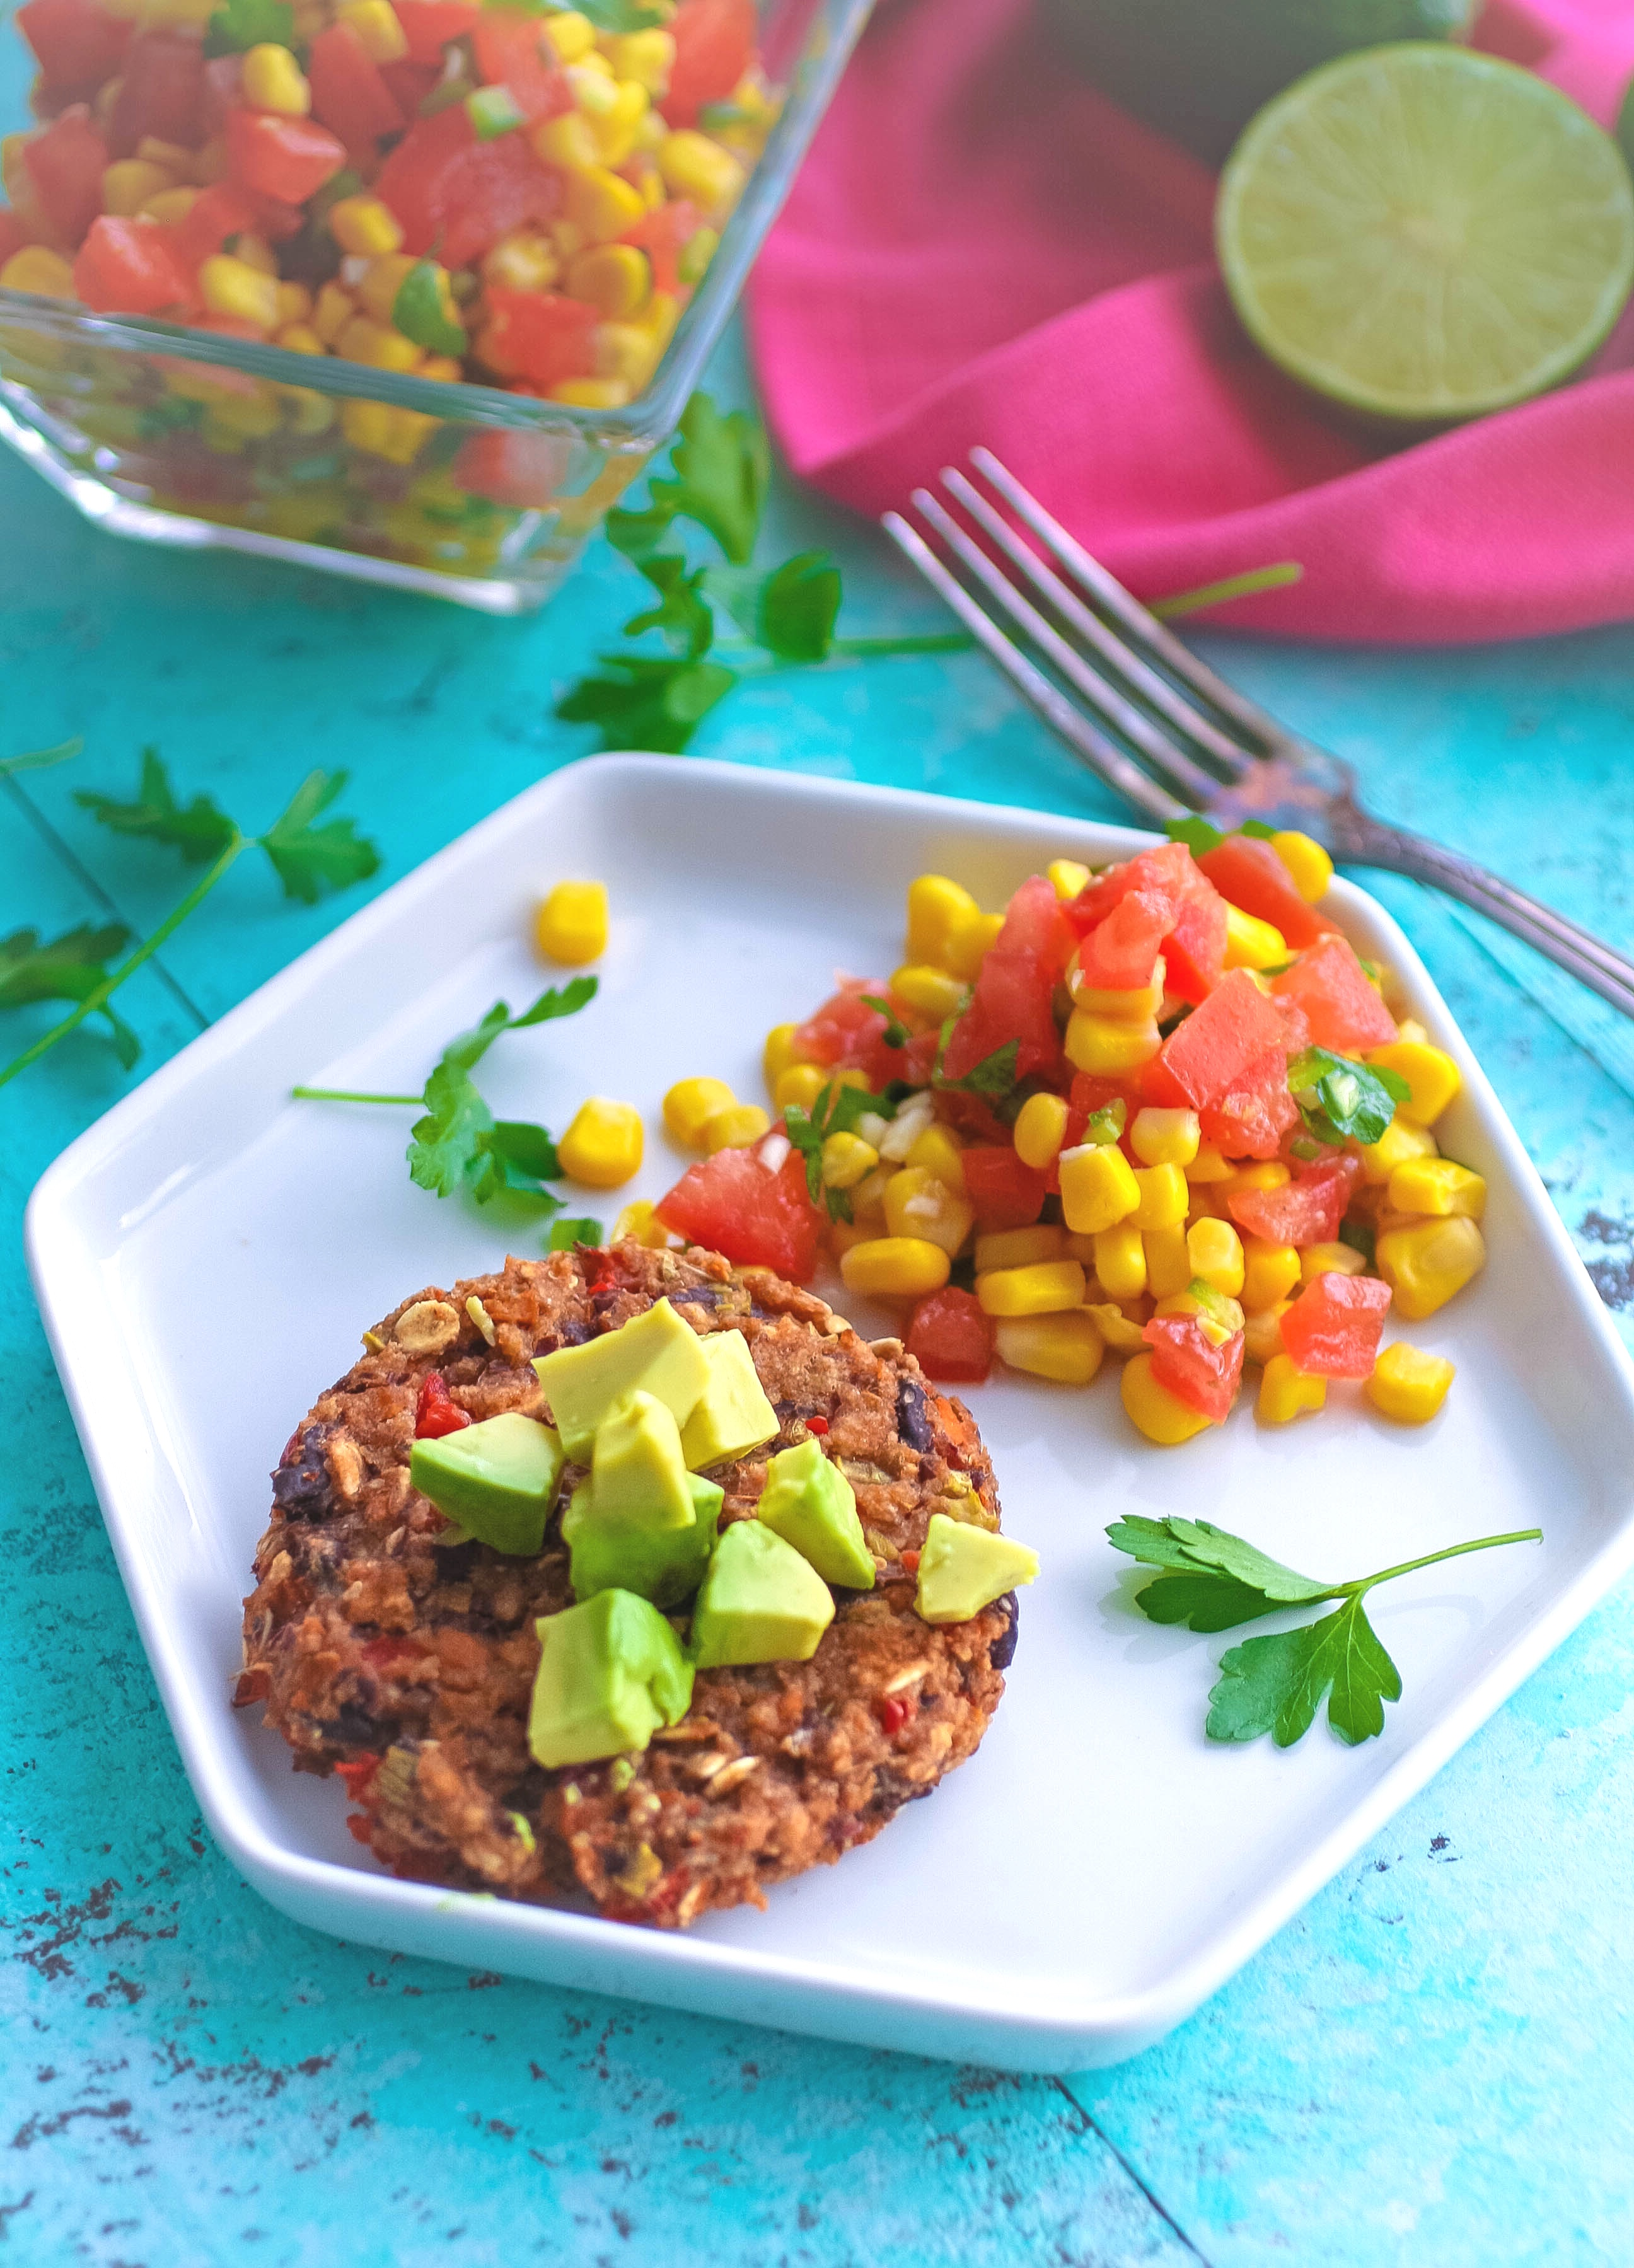 Black Bean Veggie Burgers with Corn Salsa should be on the menu soon! You'll love Black Bean Veggie Burgers with Corn Salsa as your next meatless meal!